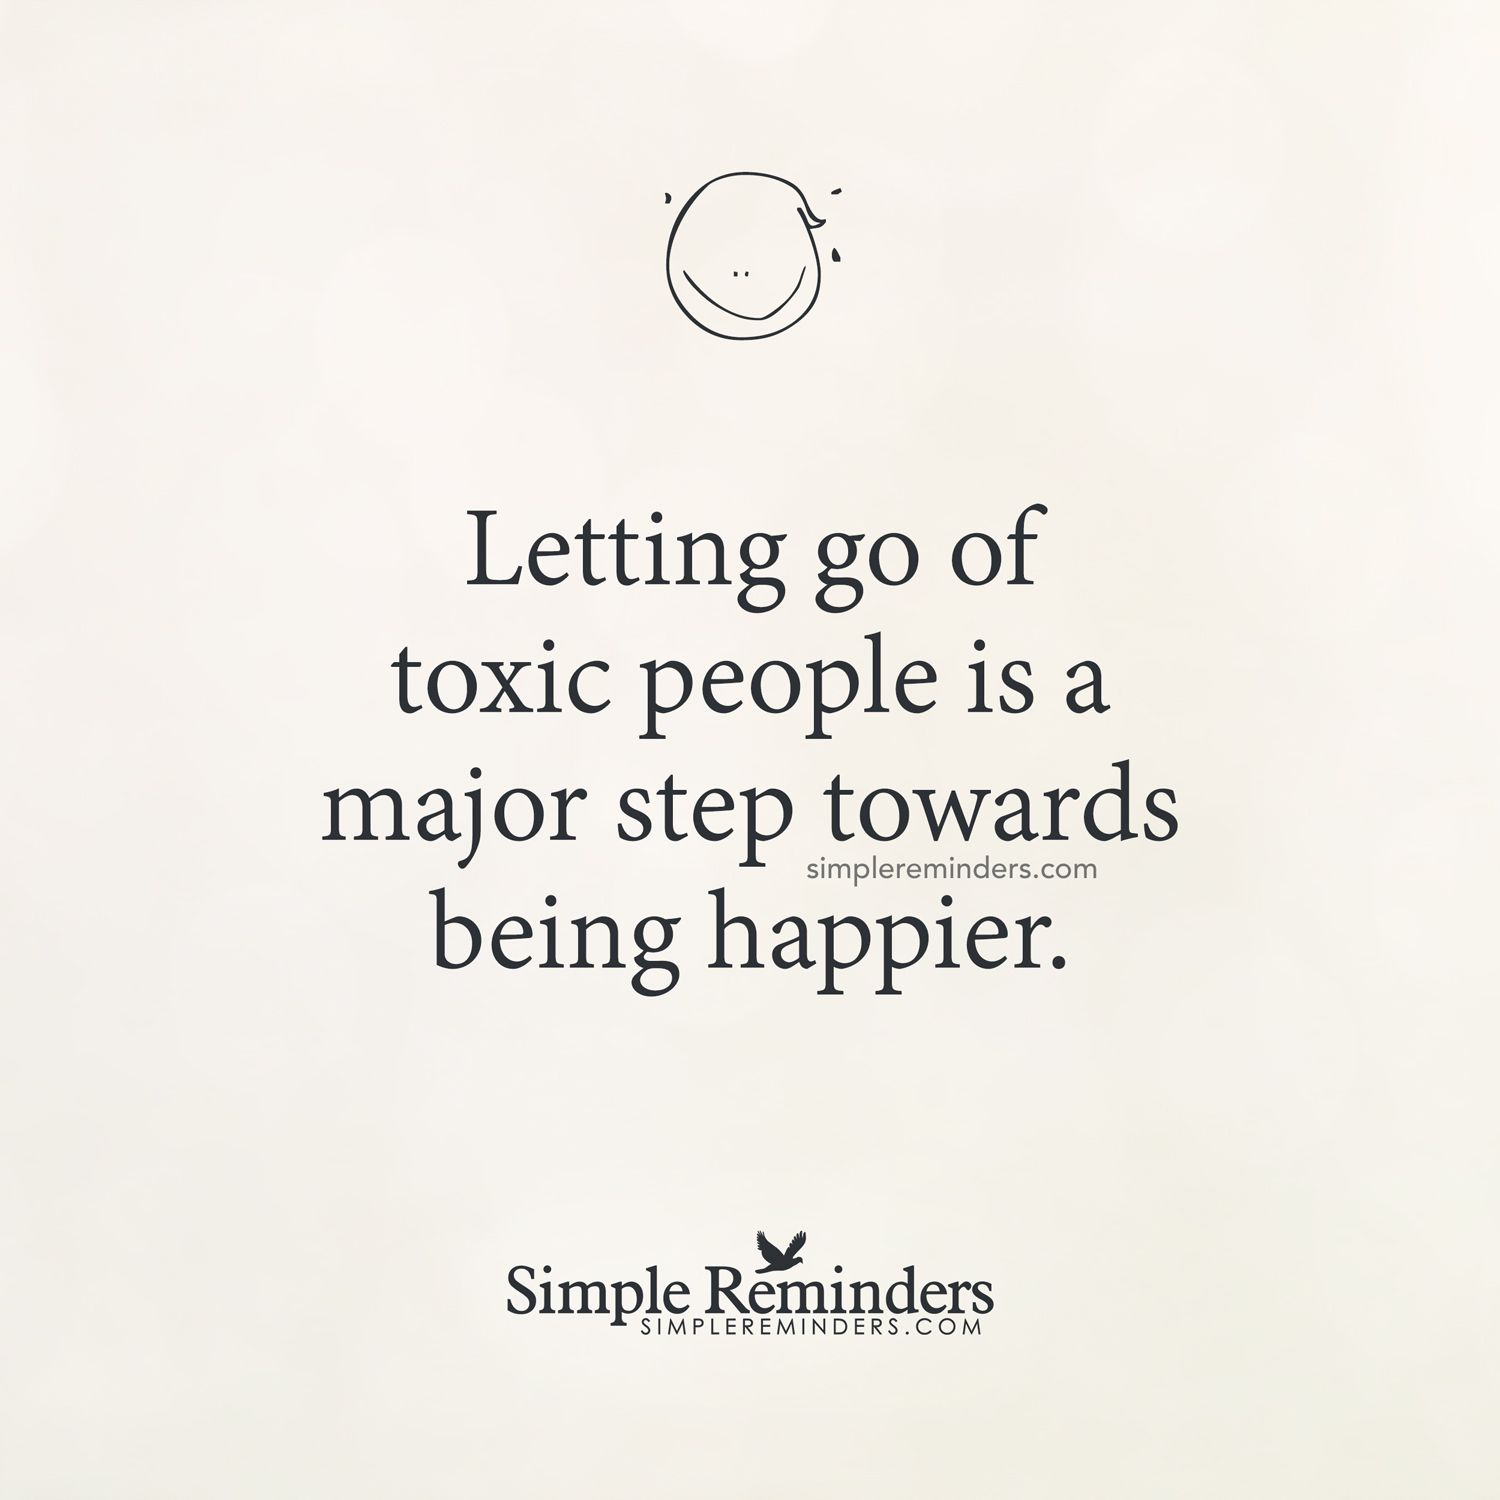 Toxic Quotes Letting People About Go